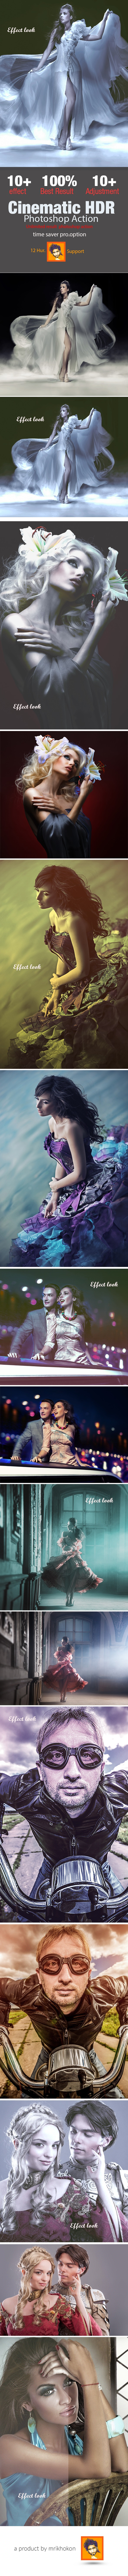 Cinematic HDR Action - Actions Photoshop